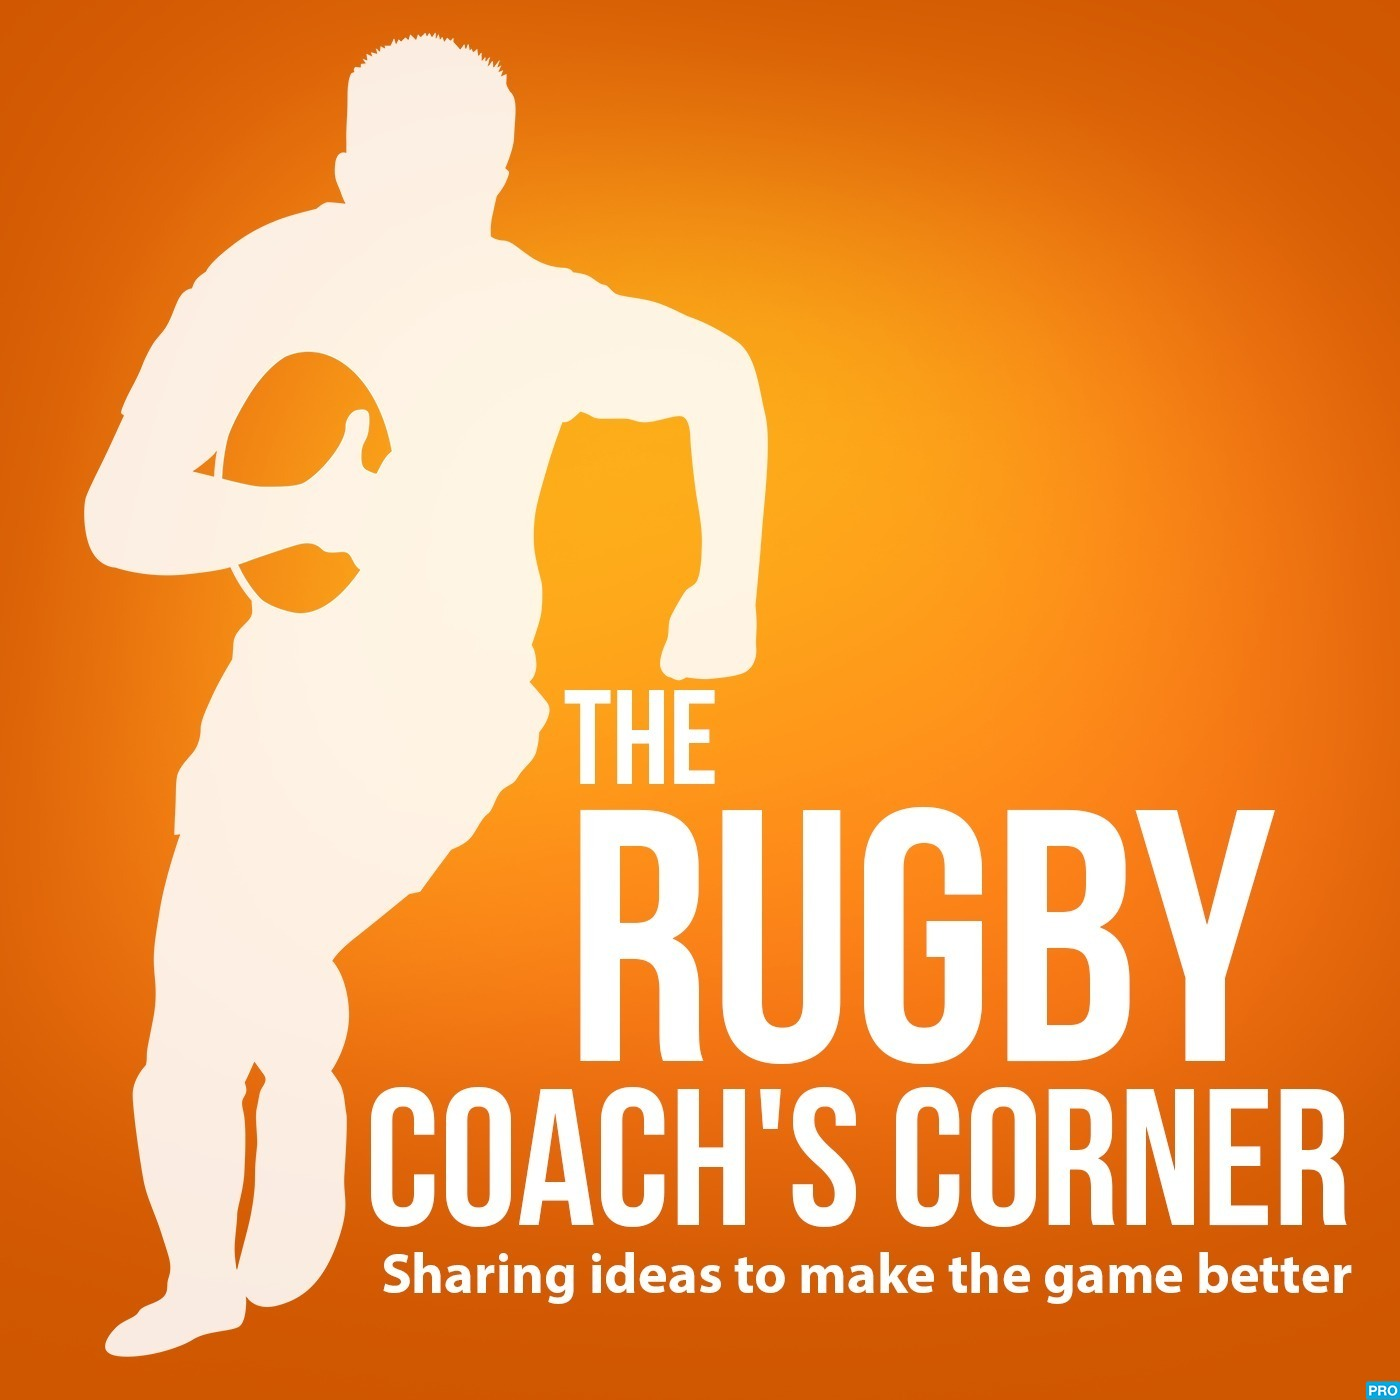 Rugby Coaches Corner - Have a listen to chat with Andy Plimer from Rugby Coaches Corner around research within rugby and coaching ideas for age grade rugby players.